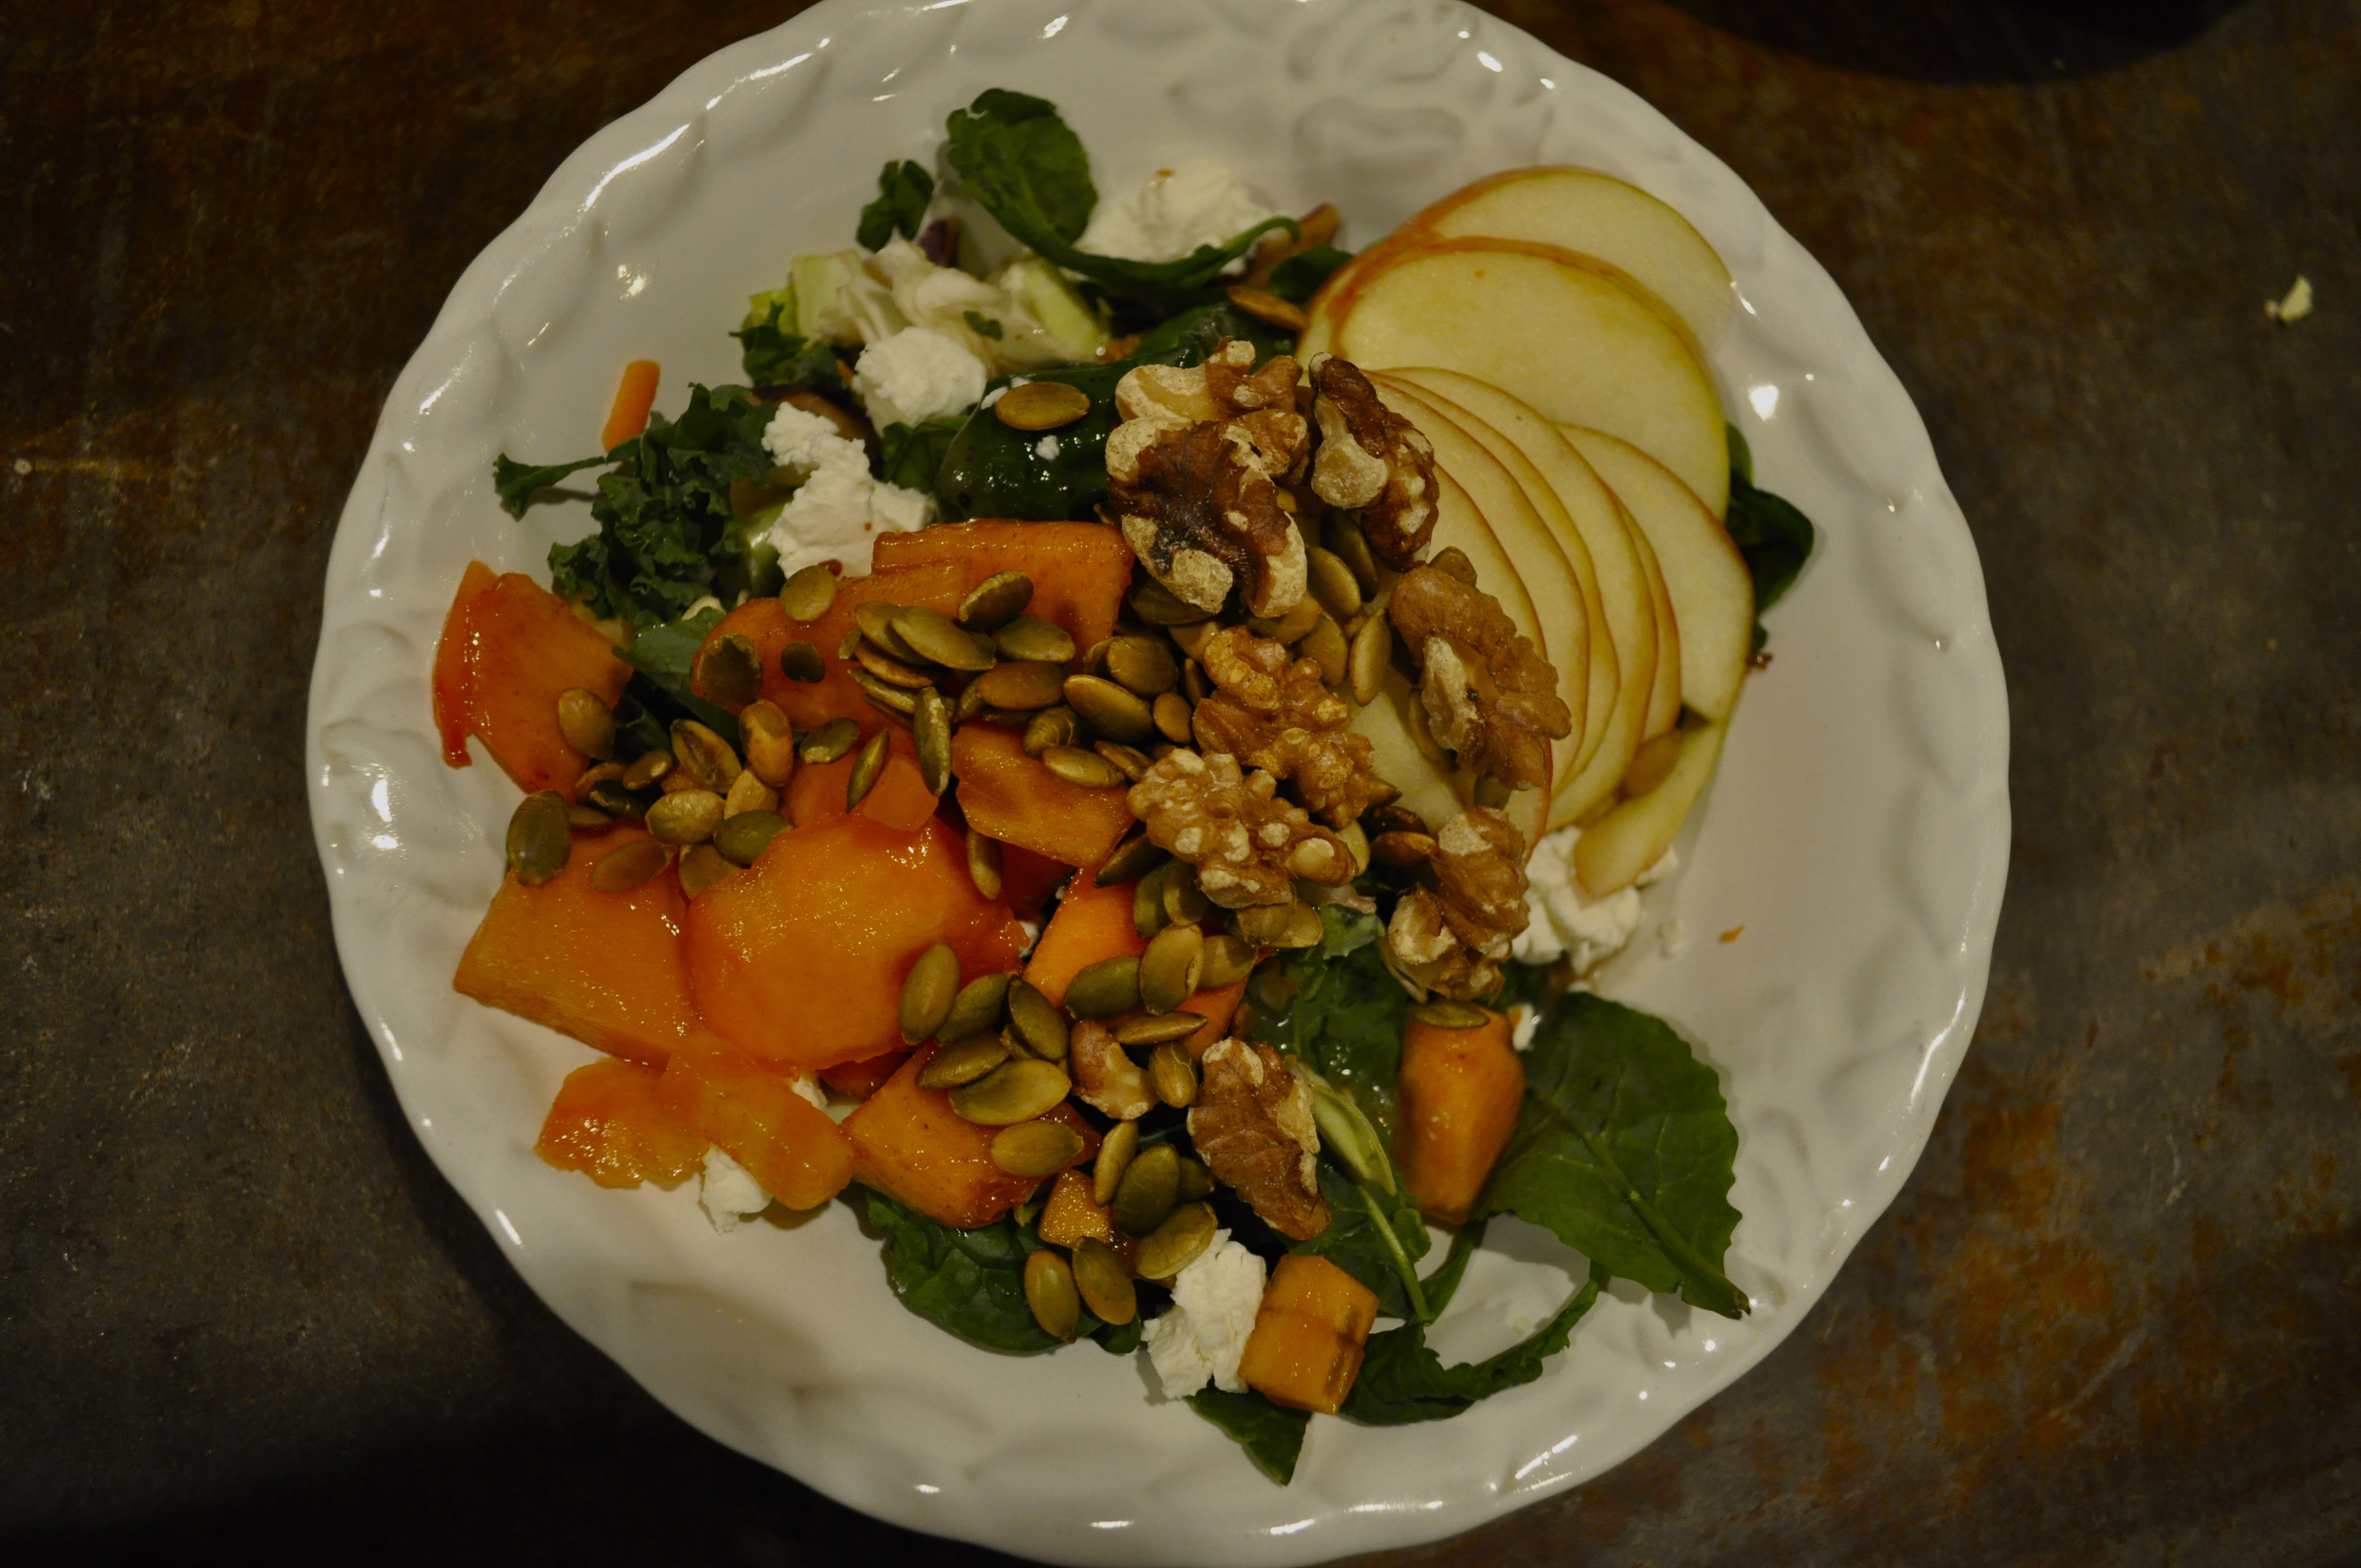 Fennel and Fire persimmon walnut salad